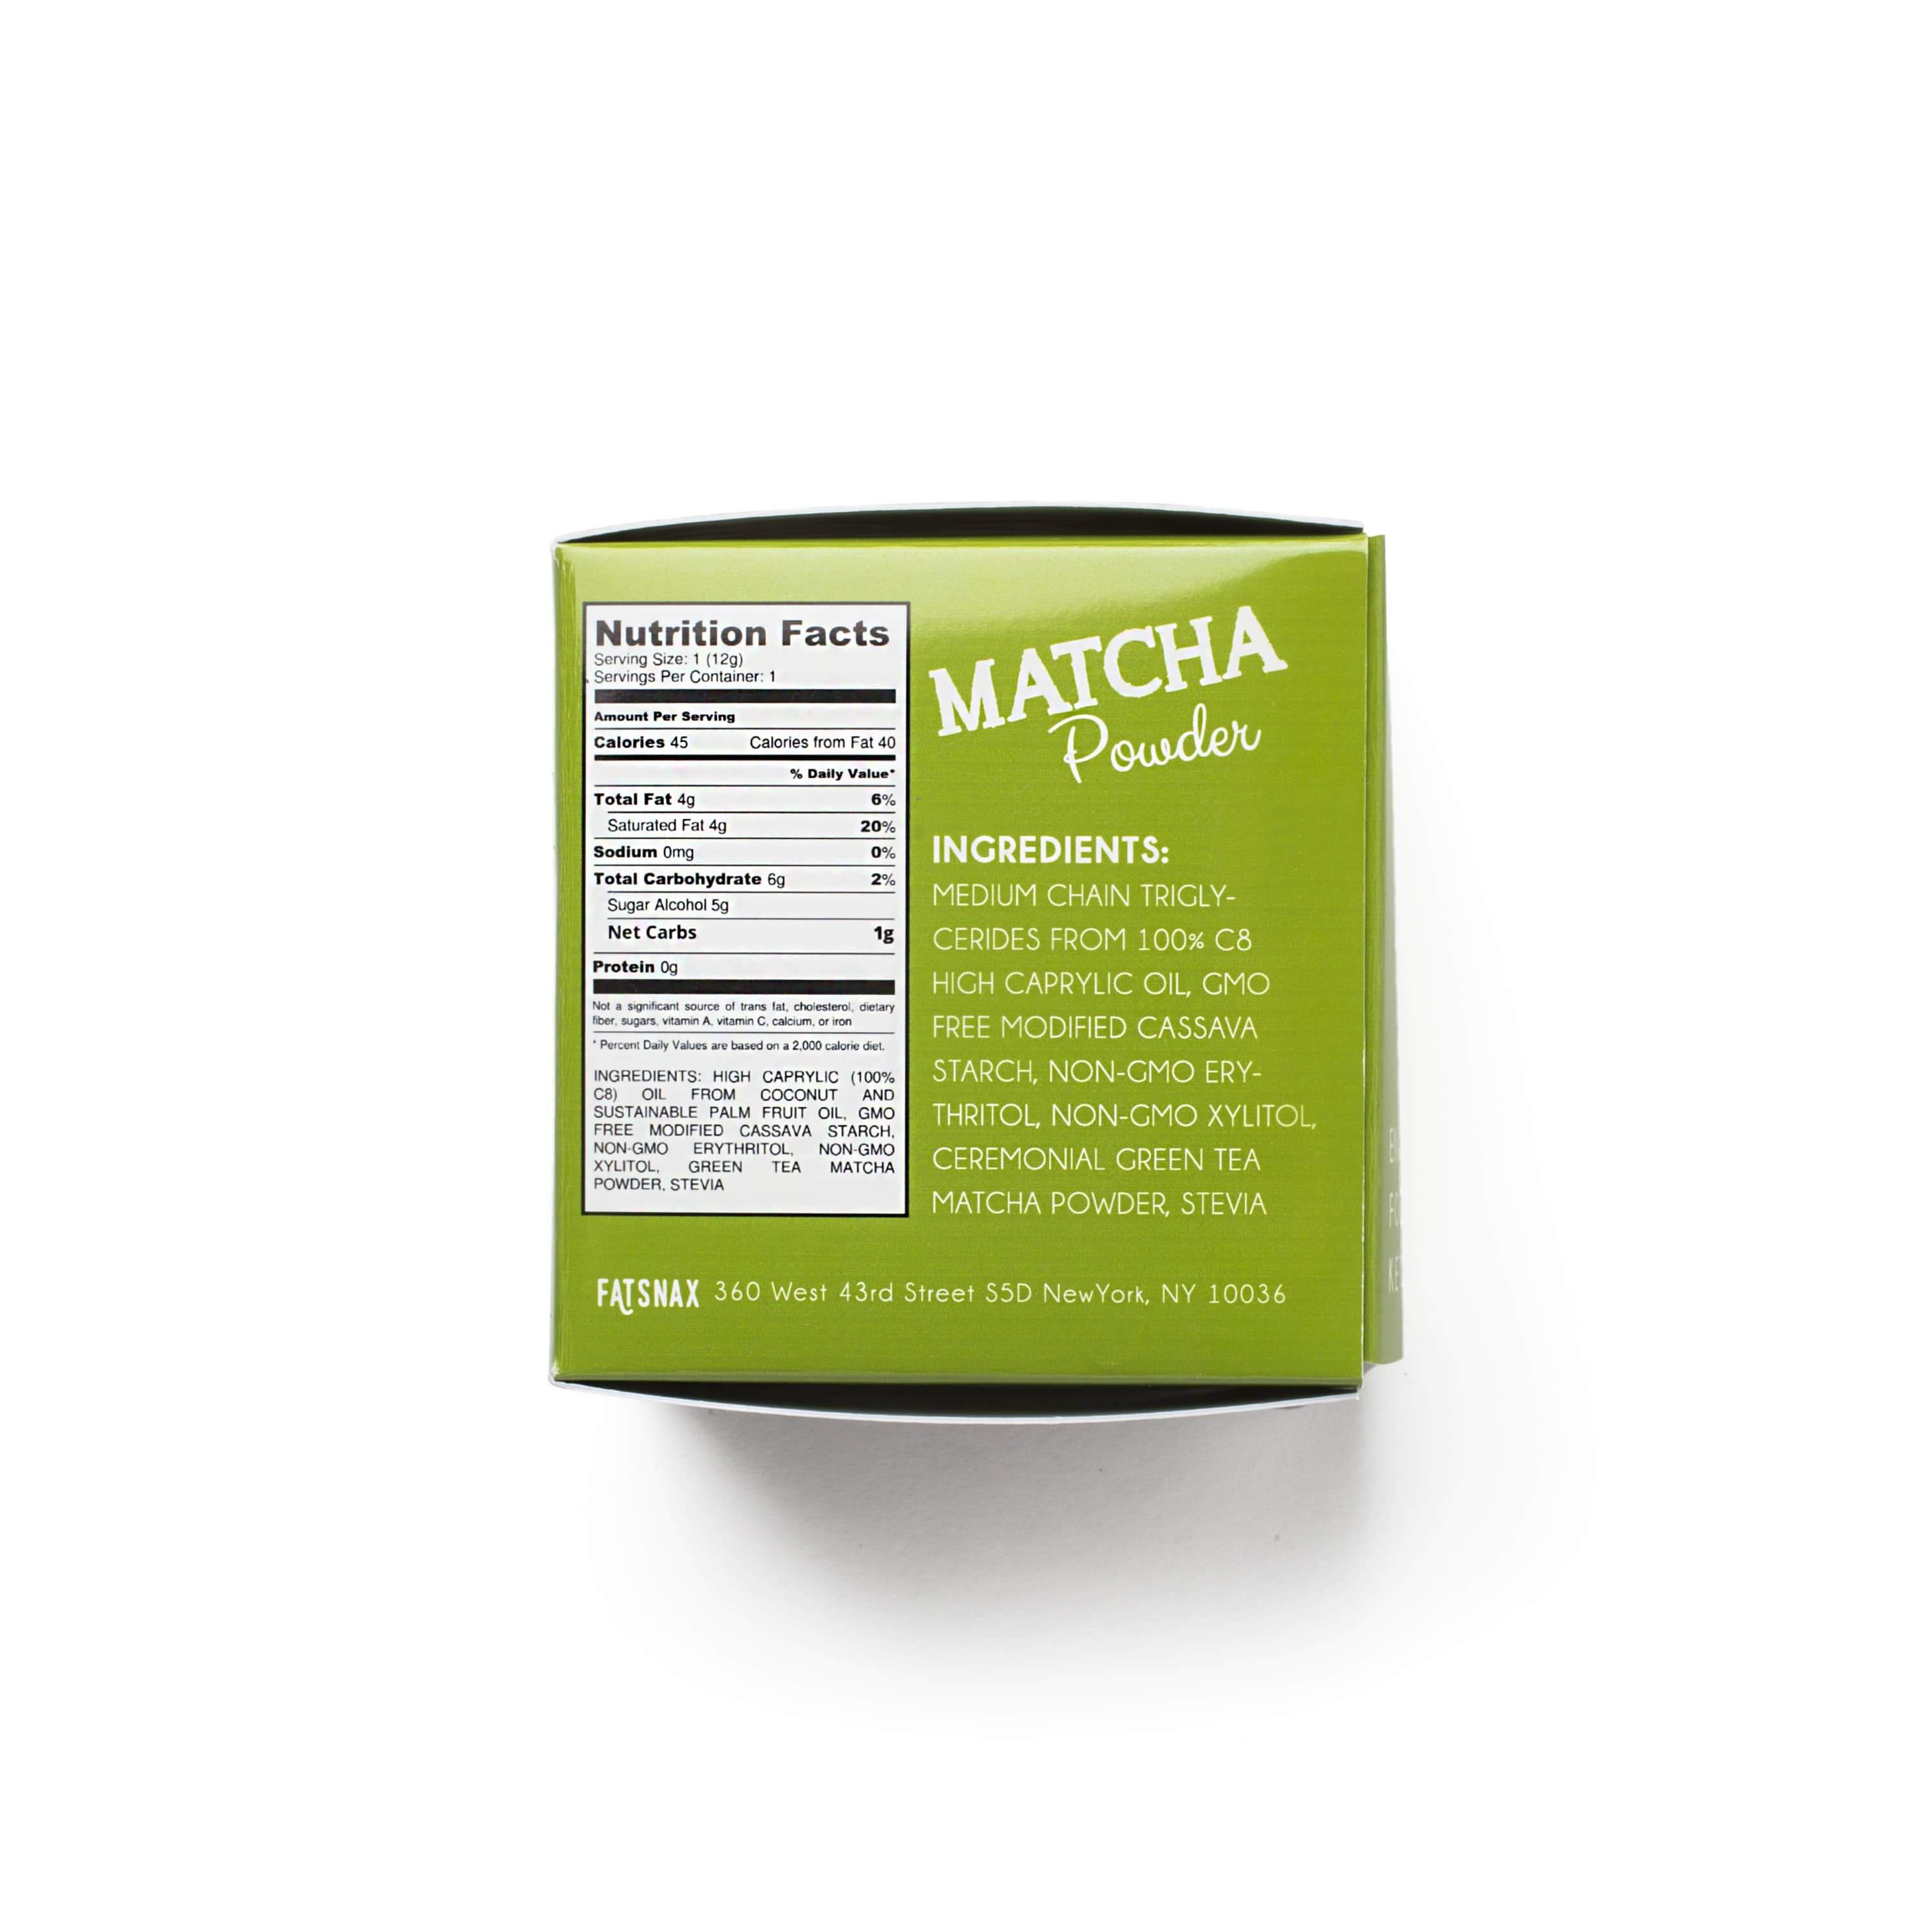 Fat Snax Keto Matcha Fat Tea Ingredients and Nutrition Facts on Box